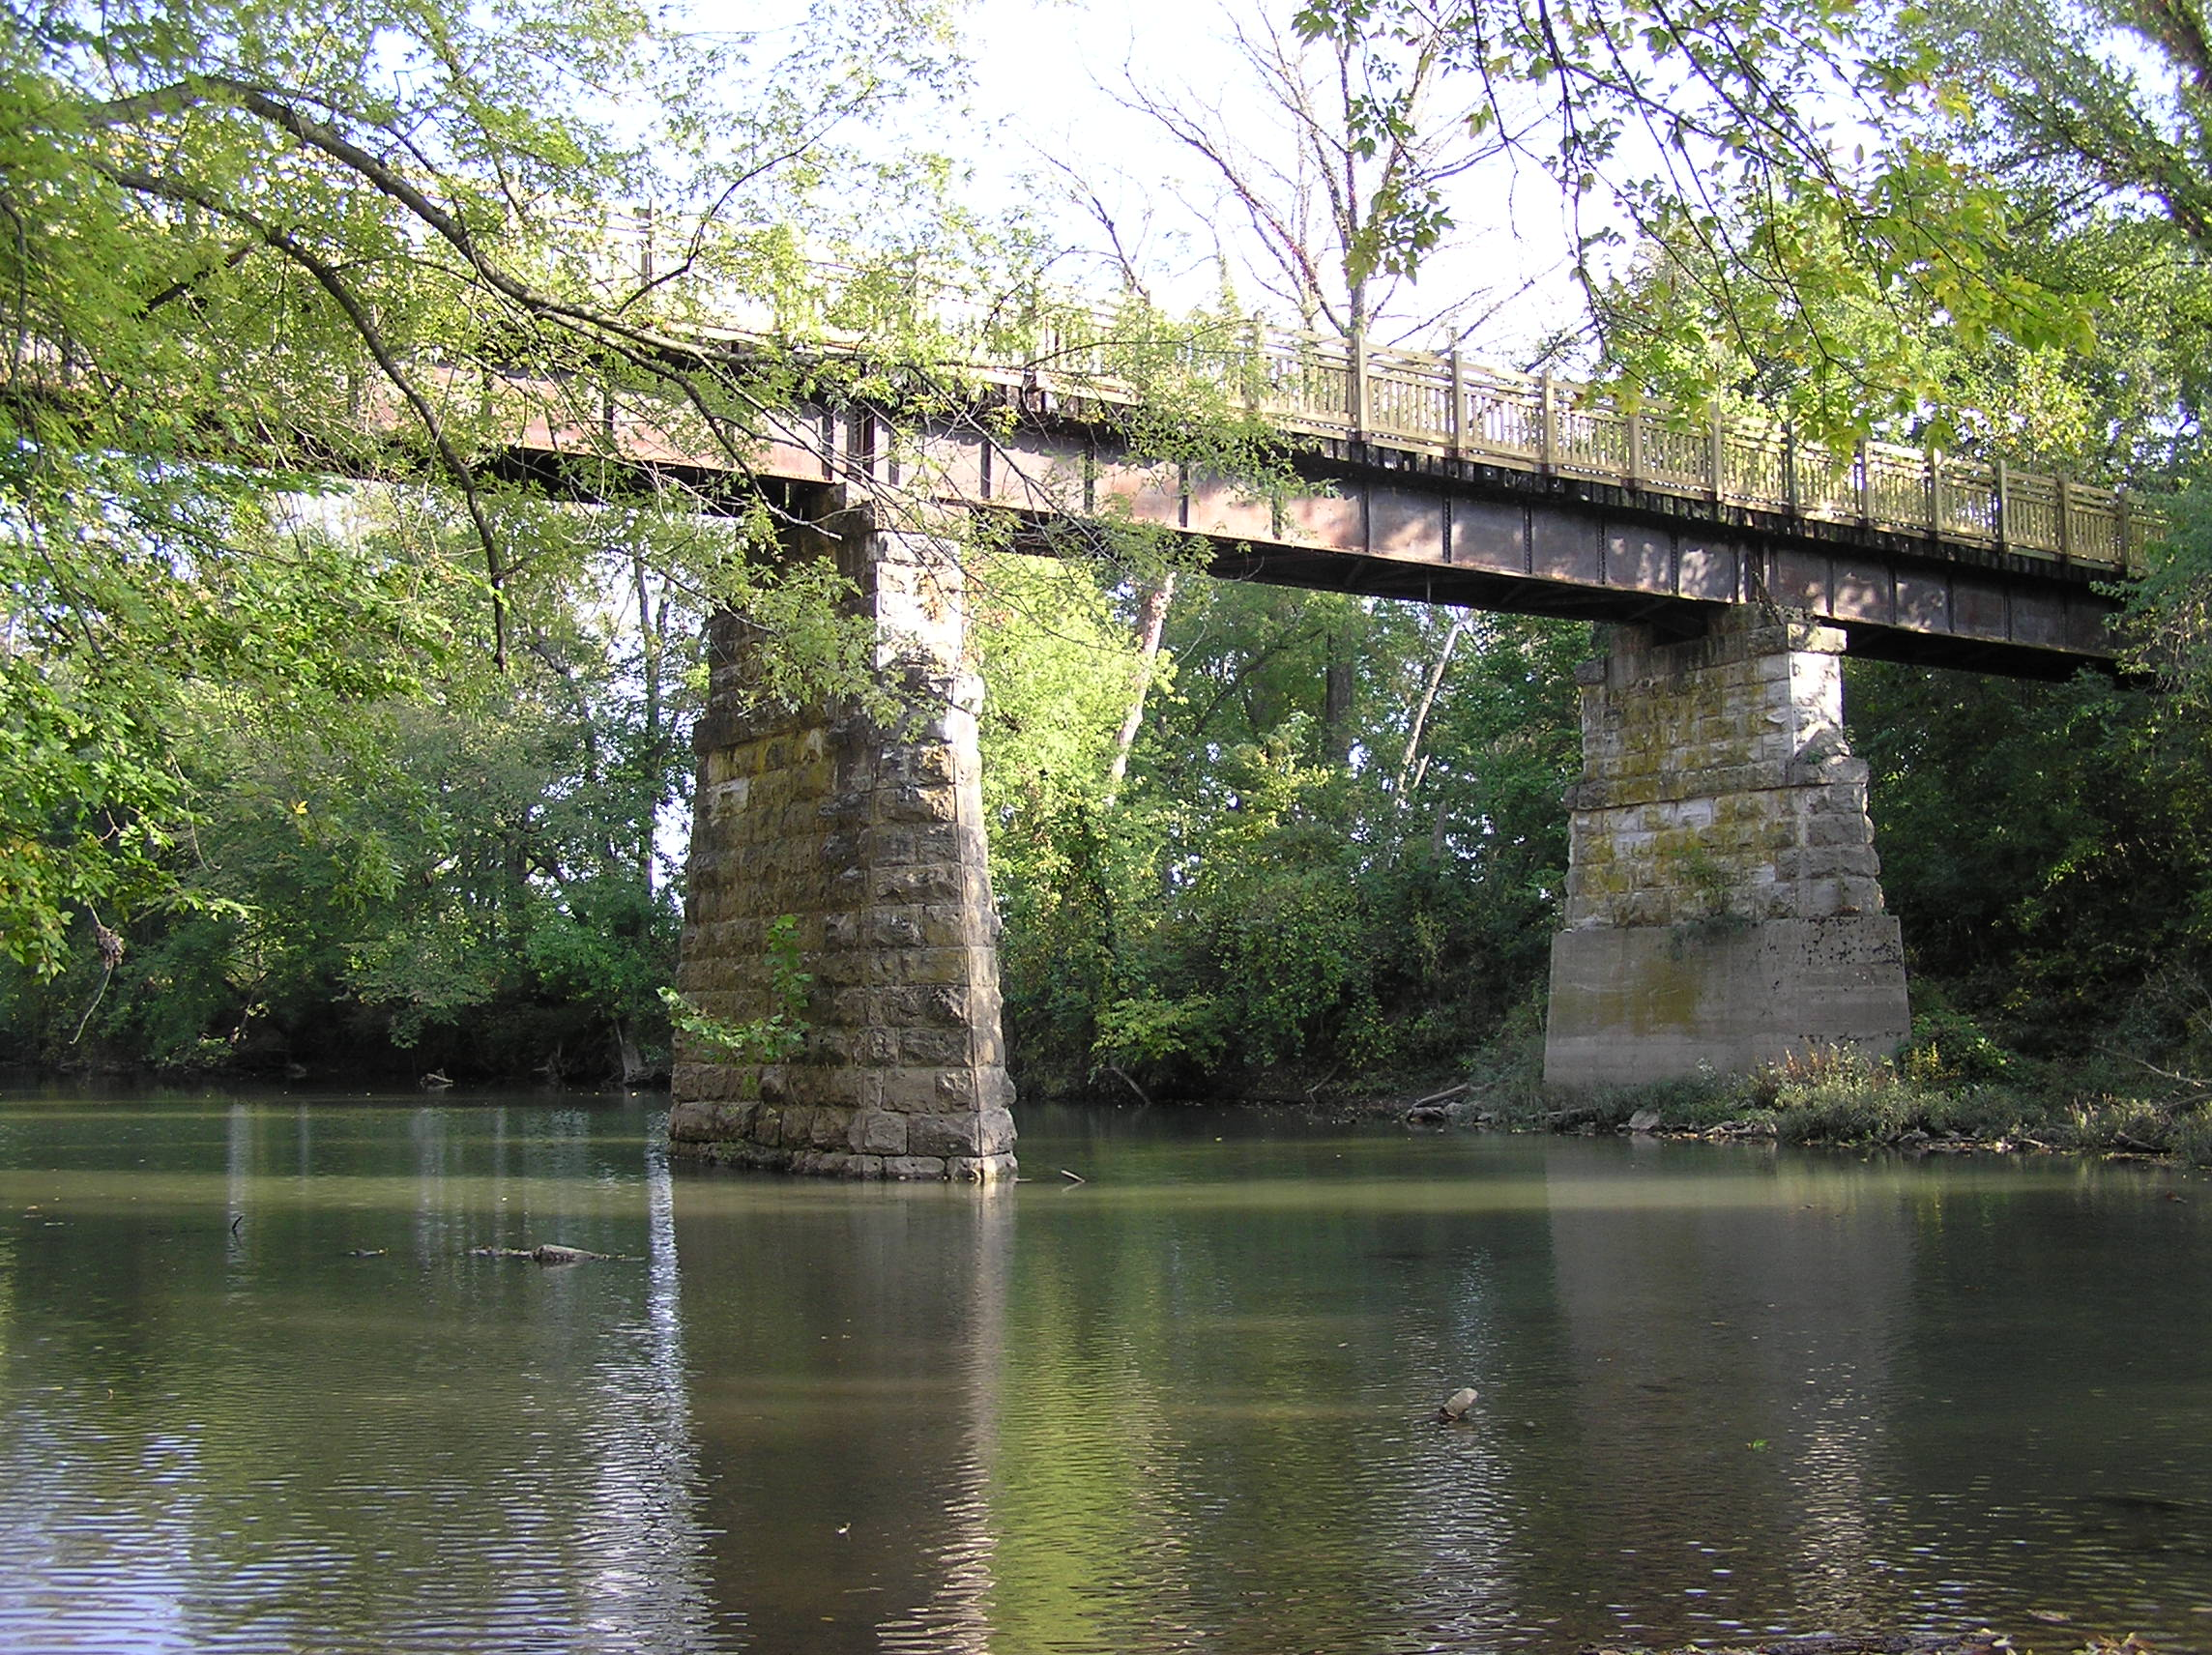 map arkansas with File Little Sac River Bridge Of The Frisco Highline Trail  1 on 7040576745 furthermore 31765819593 in addition File Little Sac River Bridge of the Frisco Highline Trail  1 together with Triton 22 Foot Center Console Boat in addition Shenandoah Acres 6.